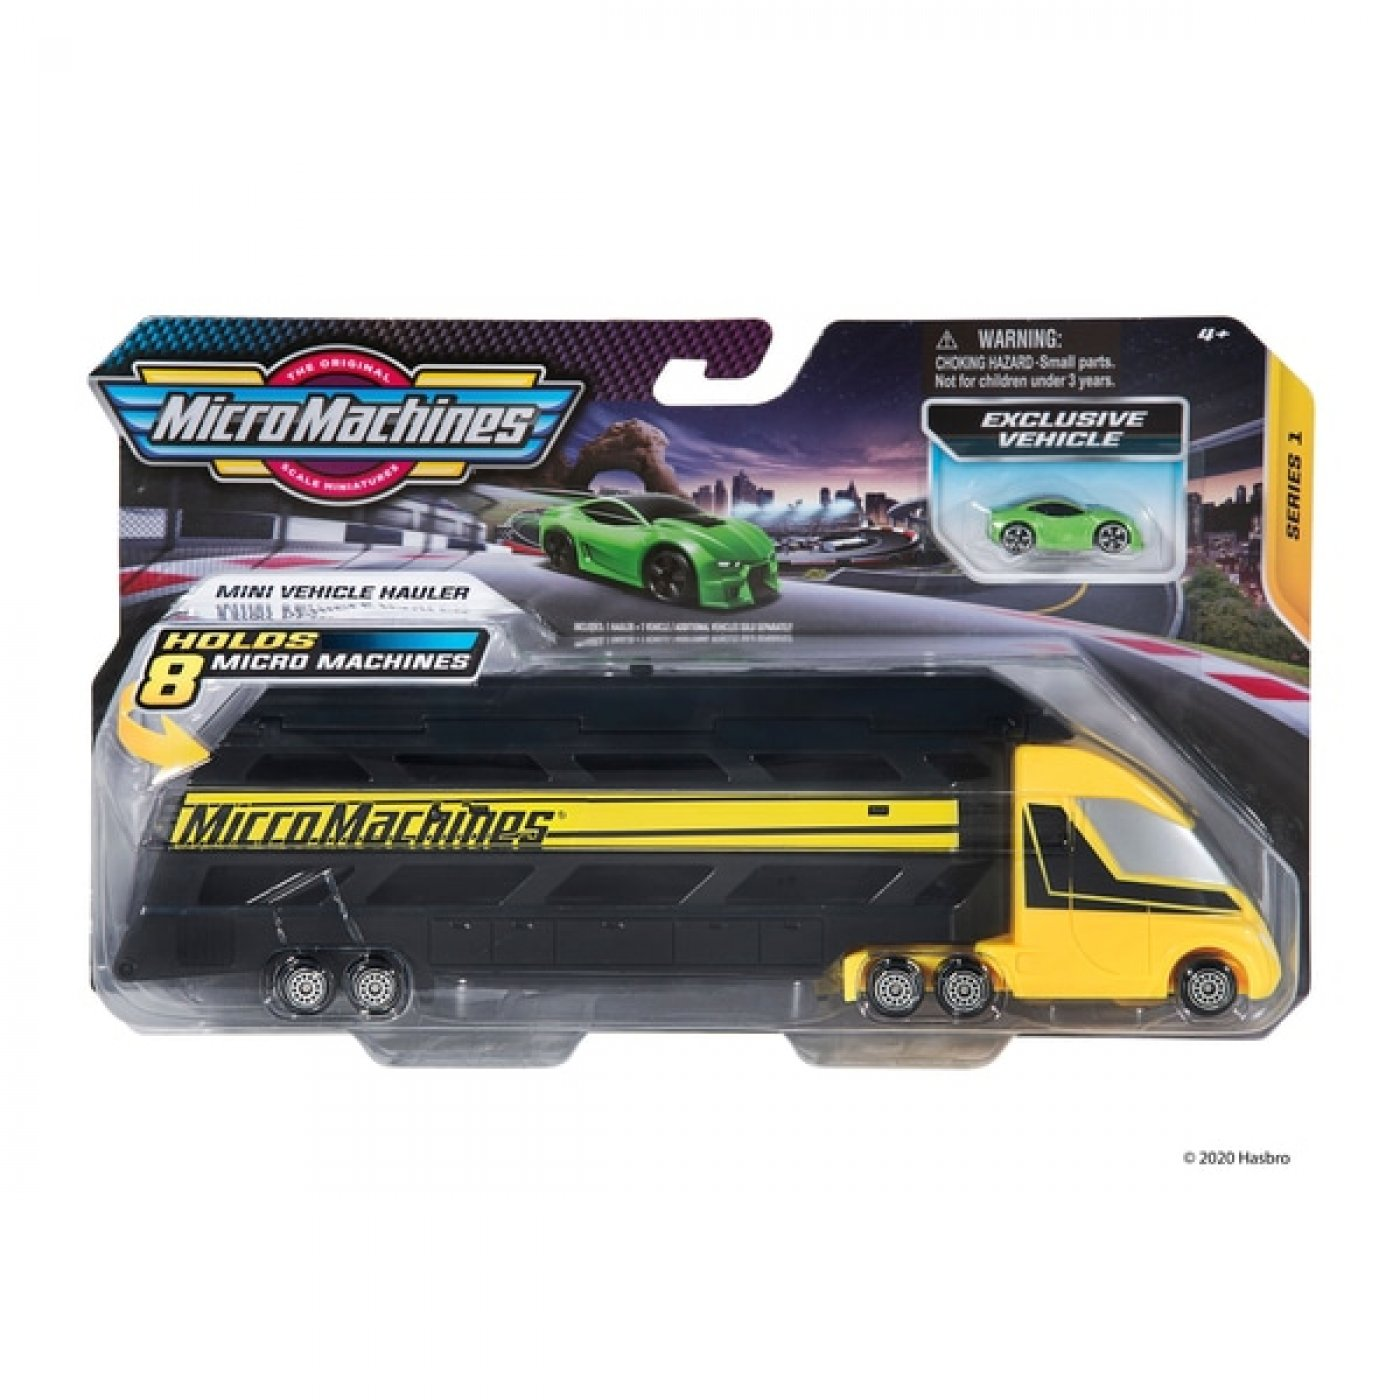 Micro Machines Hauler Transportador